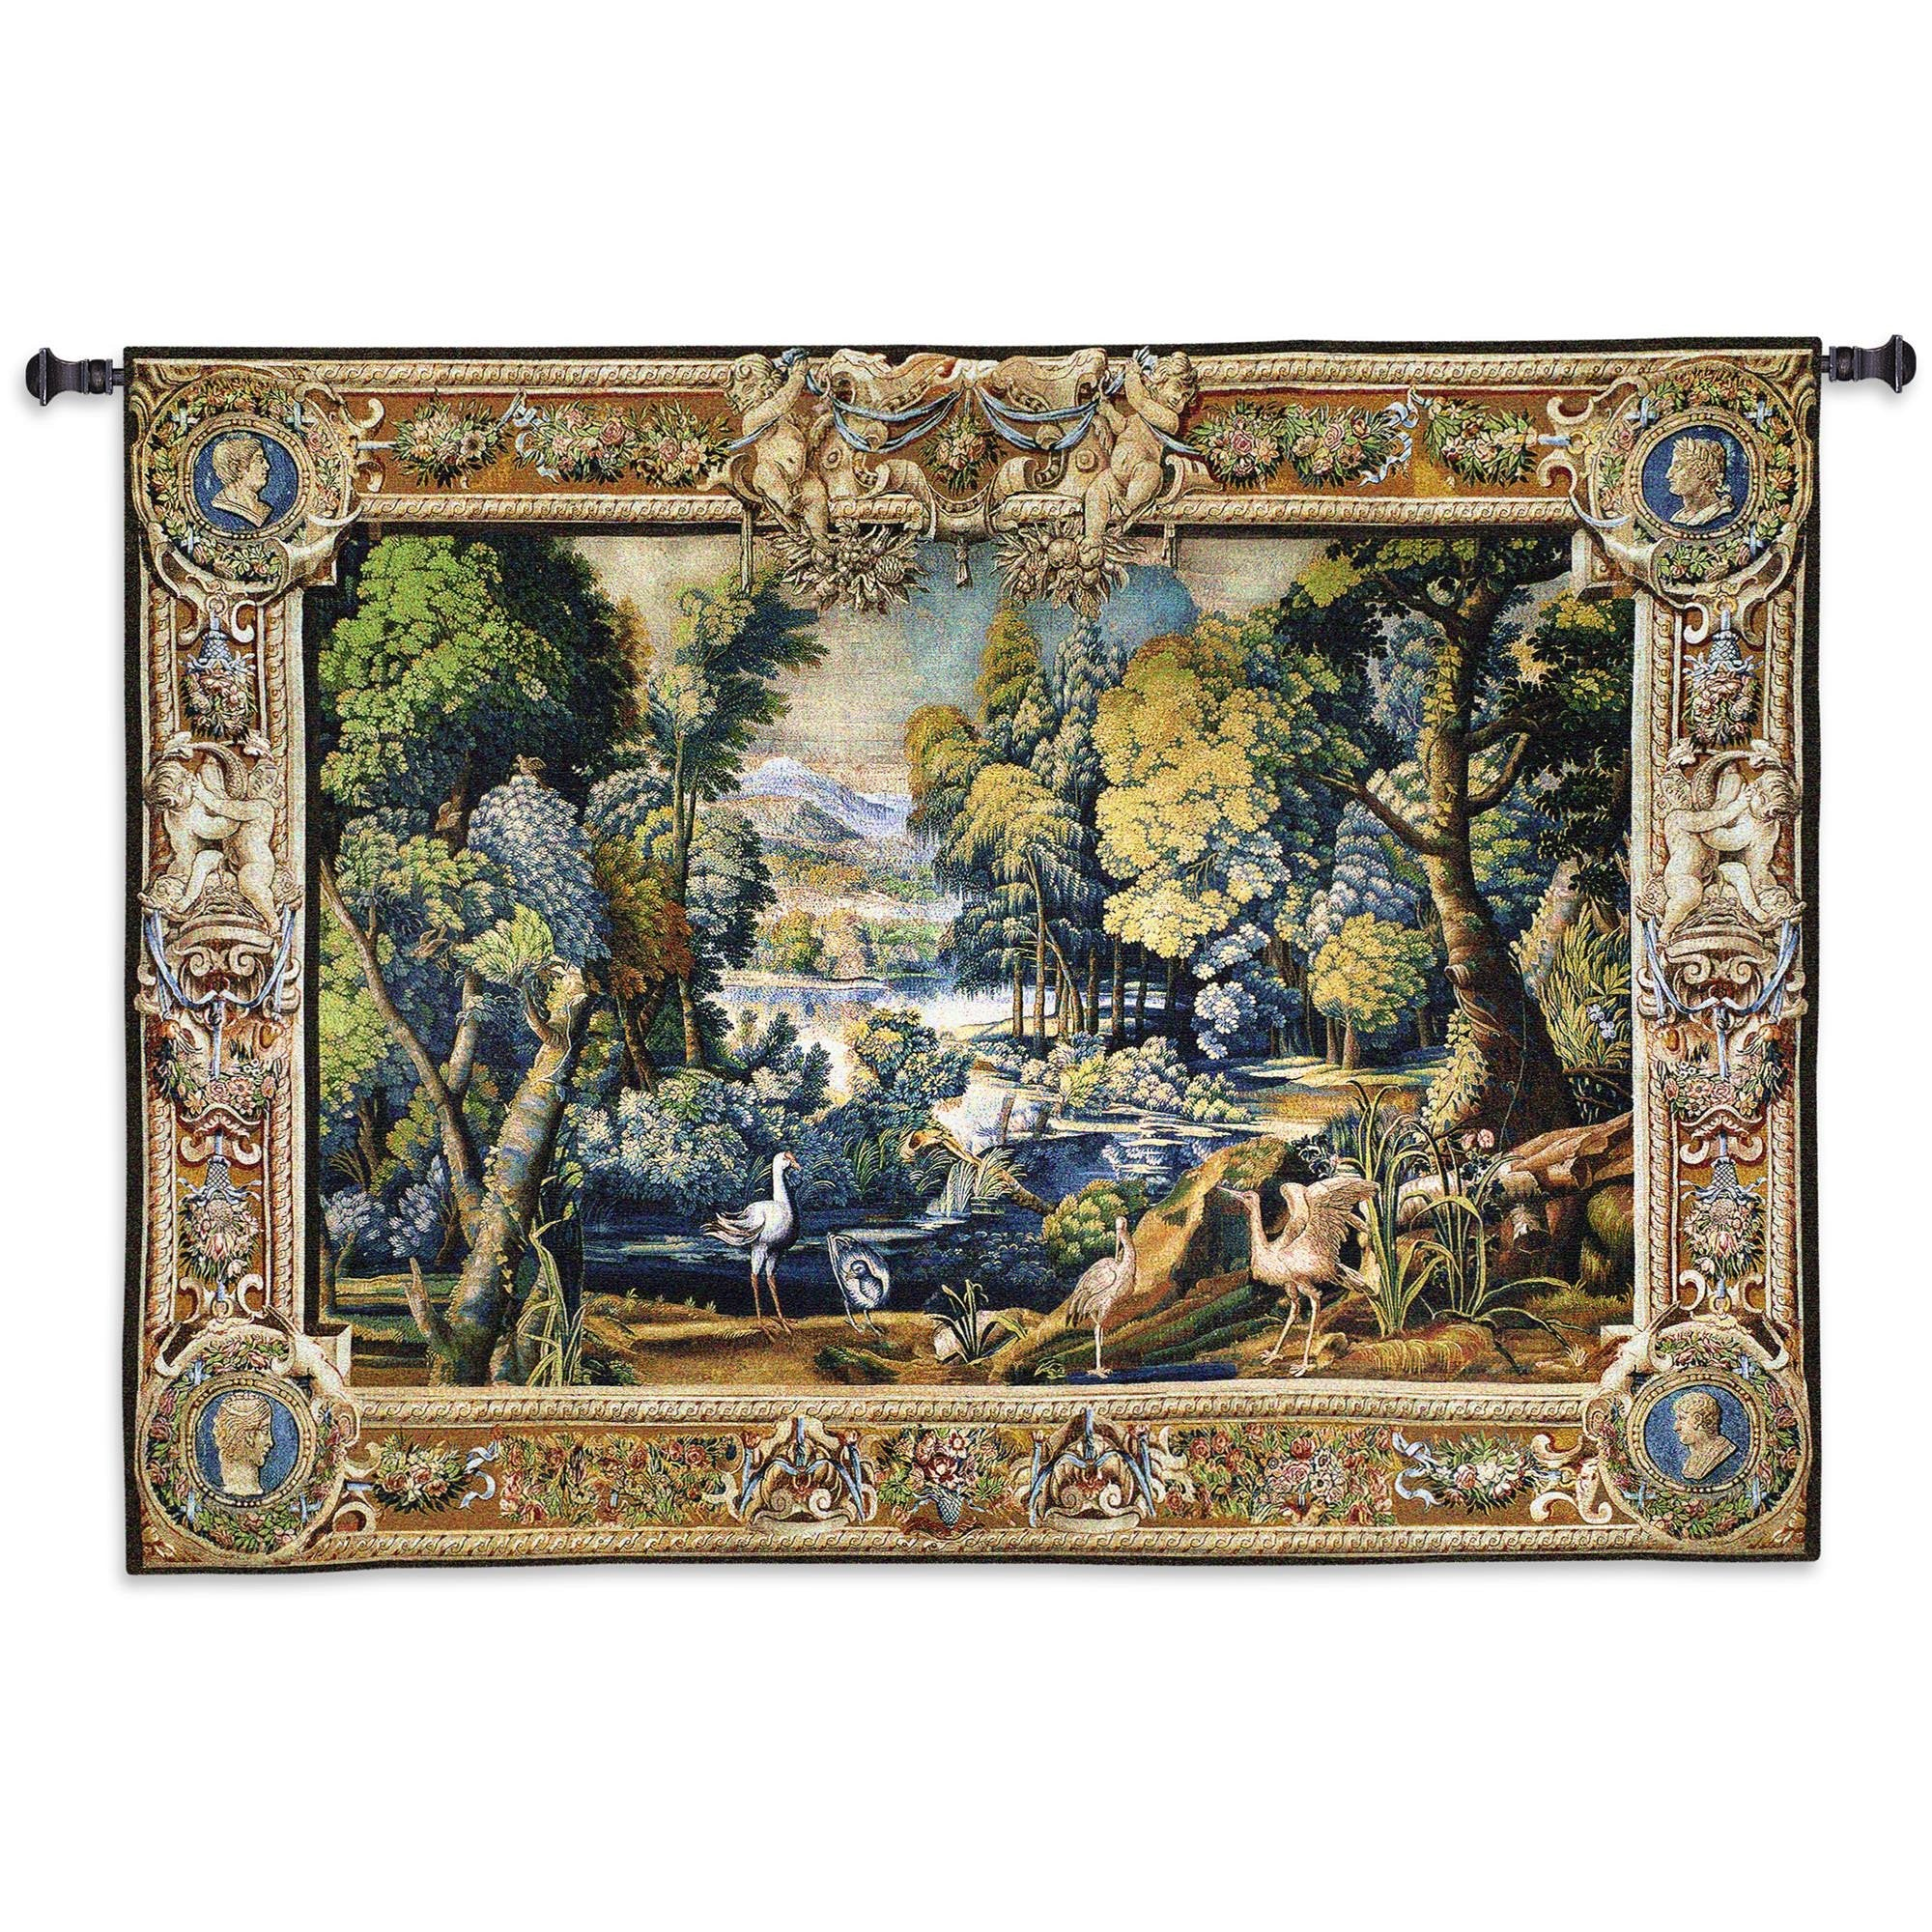 15th century Historical Animals and Wildlife Wall Hanging Tapestry